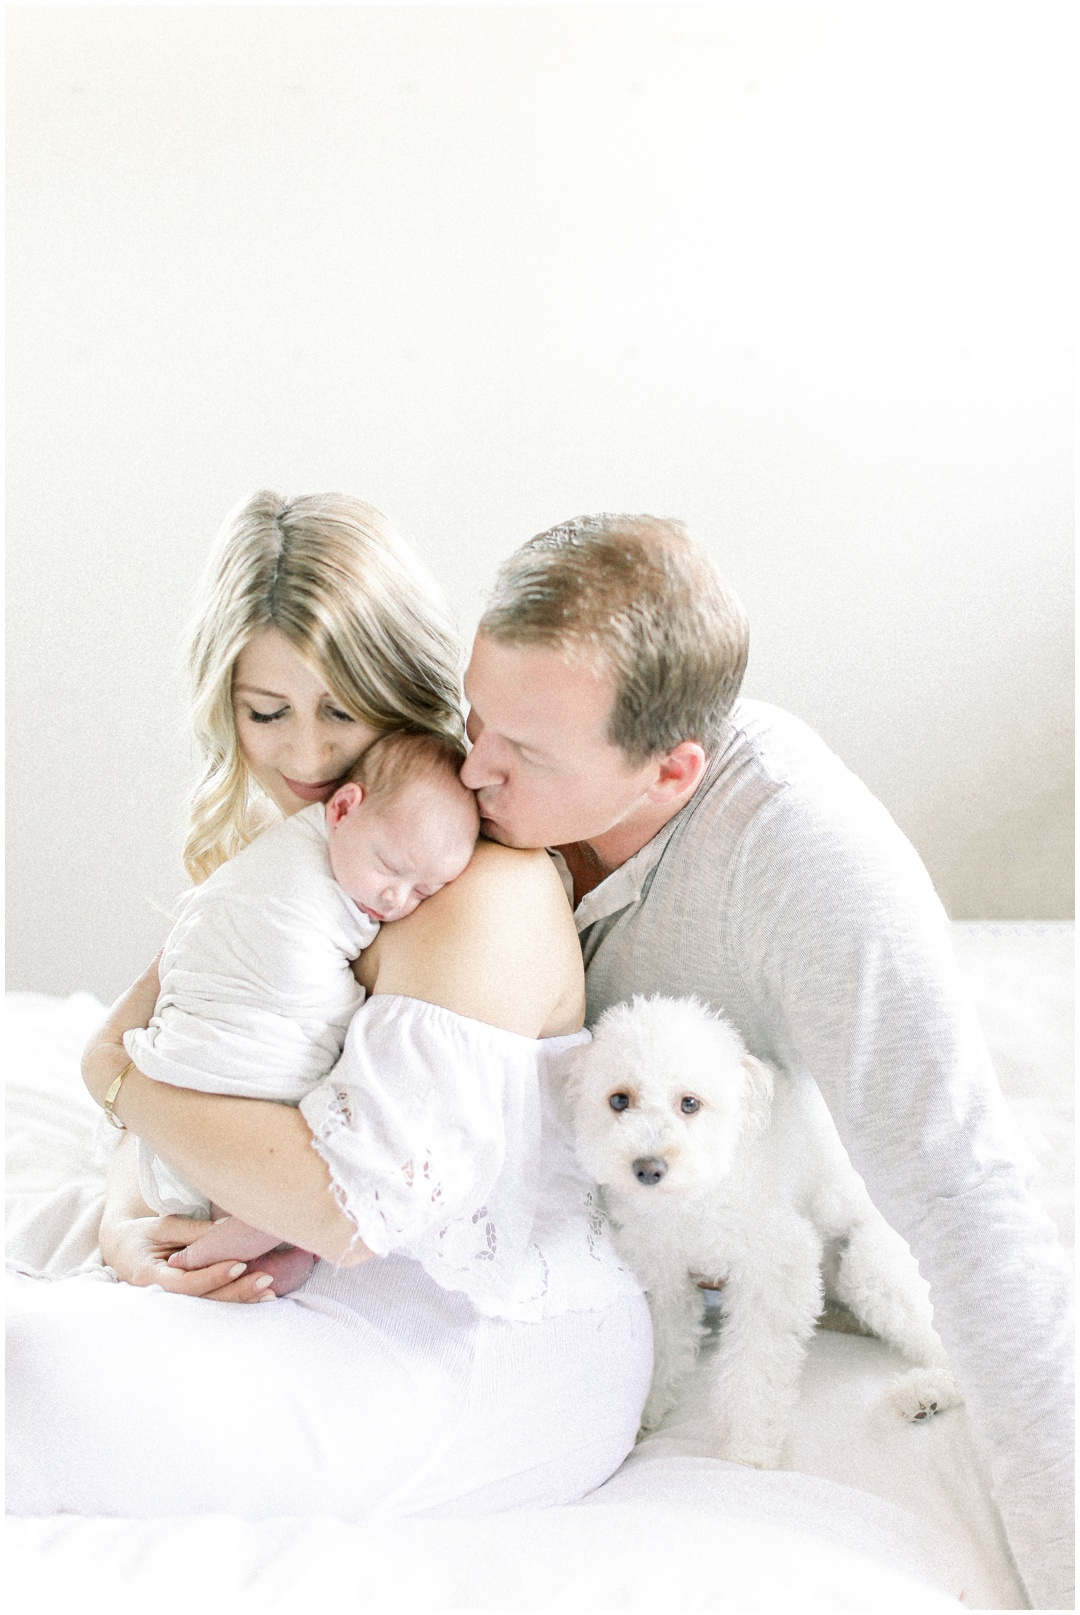 Newport_Beach_Newborn_Light_Airy_Natural_Photographer_Newport_Beach_Photographer_Orange_County_Family_Photographer_Cori_Kleckner_Photography_Huntington_Beach_Photographer_Family_OC_Newborn_Megan_Bradley_Schueneman_Charlie_Schueneman_Dean__3587.jpg